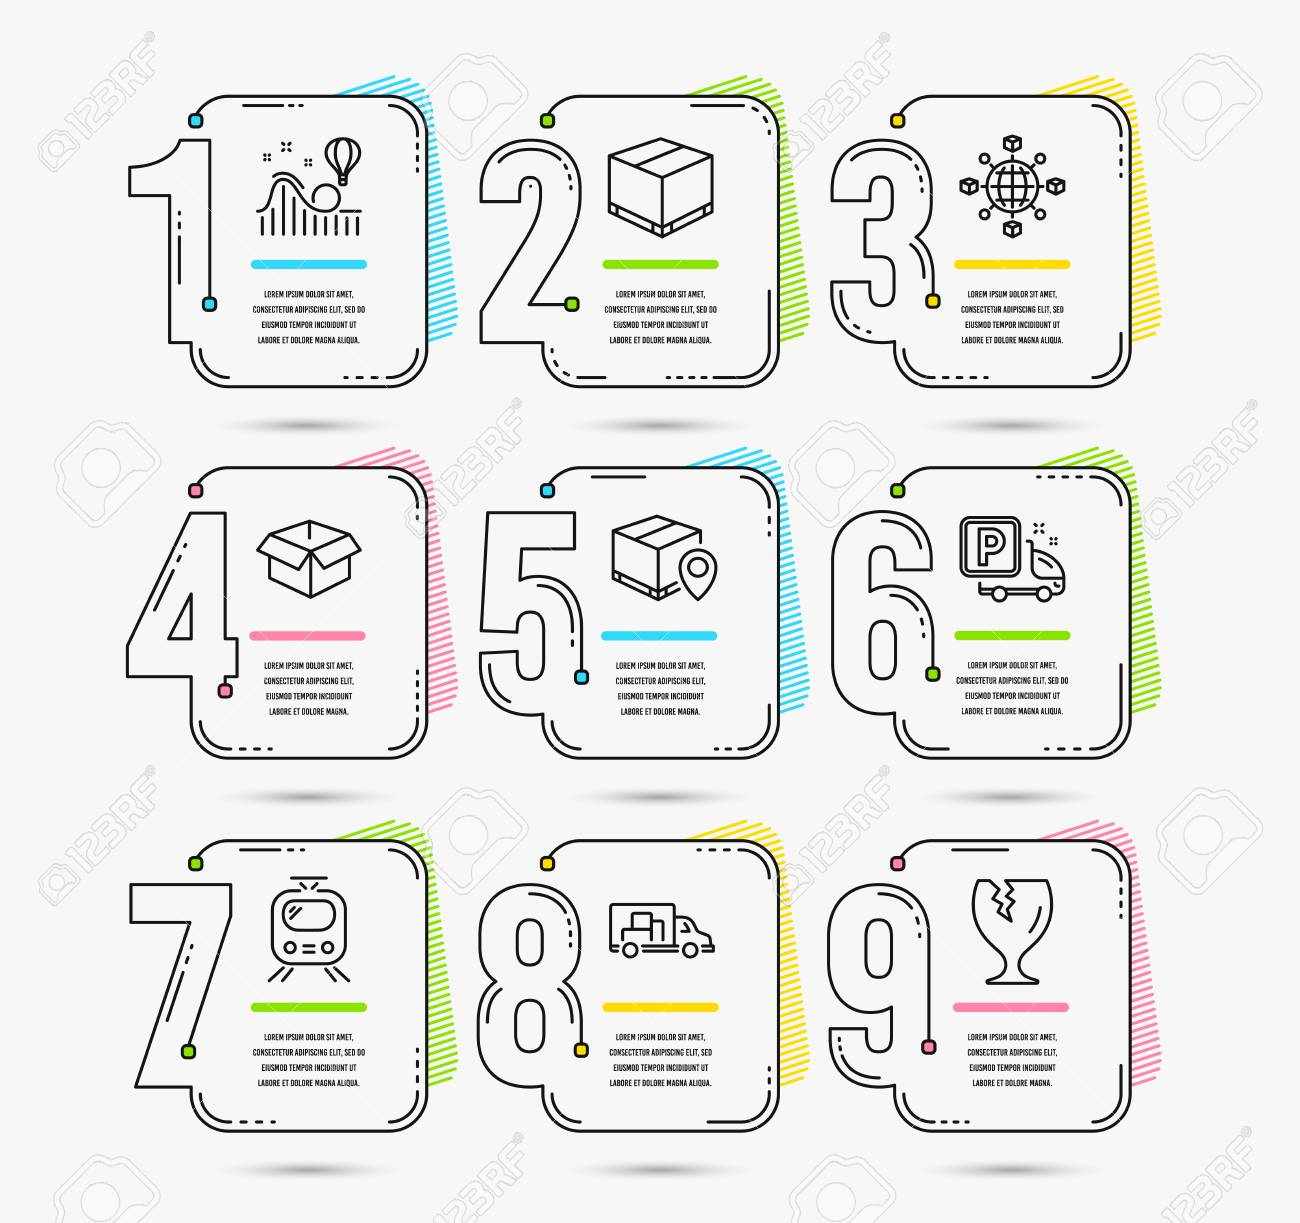 Infographic timeline set of Logistics network, Parcel tracking and Opened box icons. Truck parking, Delivery box and Train signs. Vector - 113647178